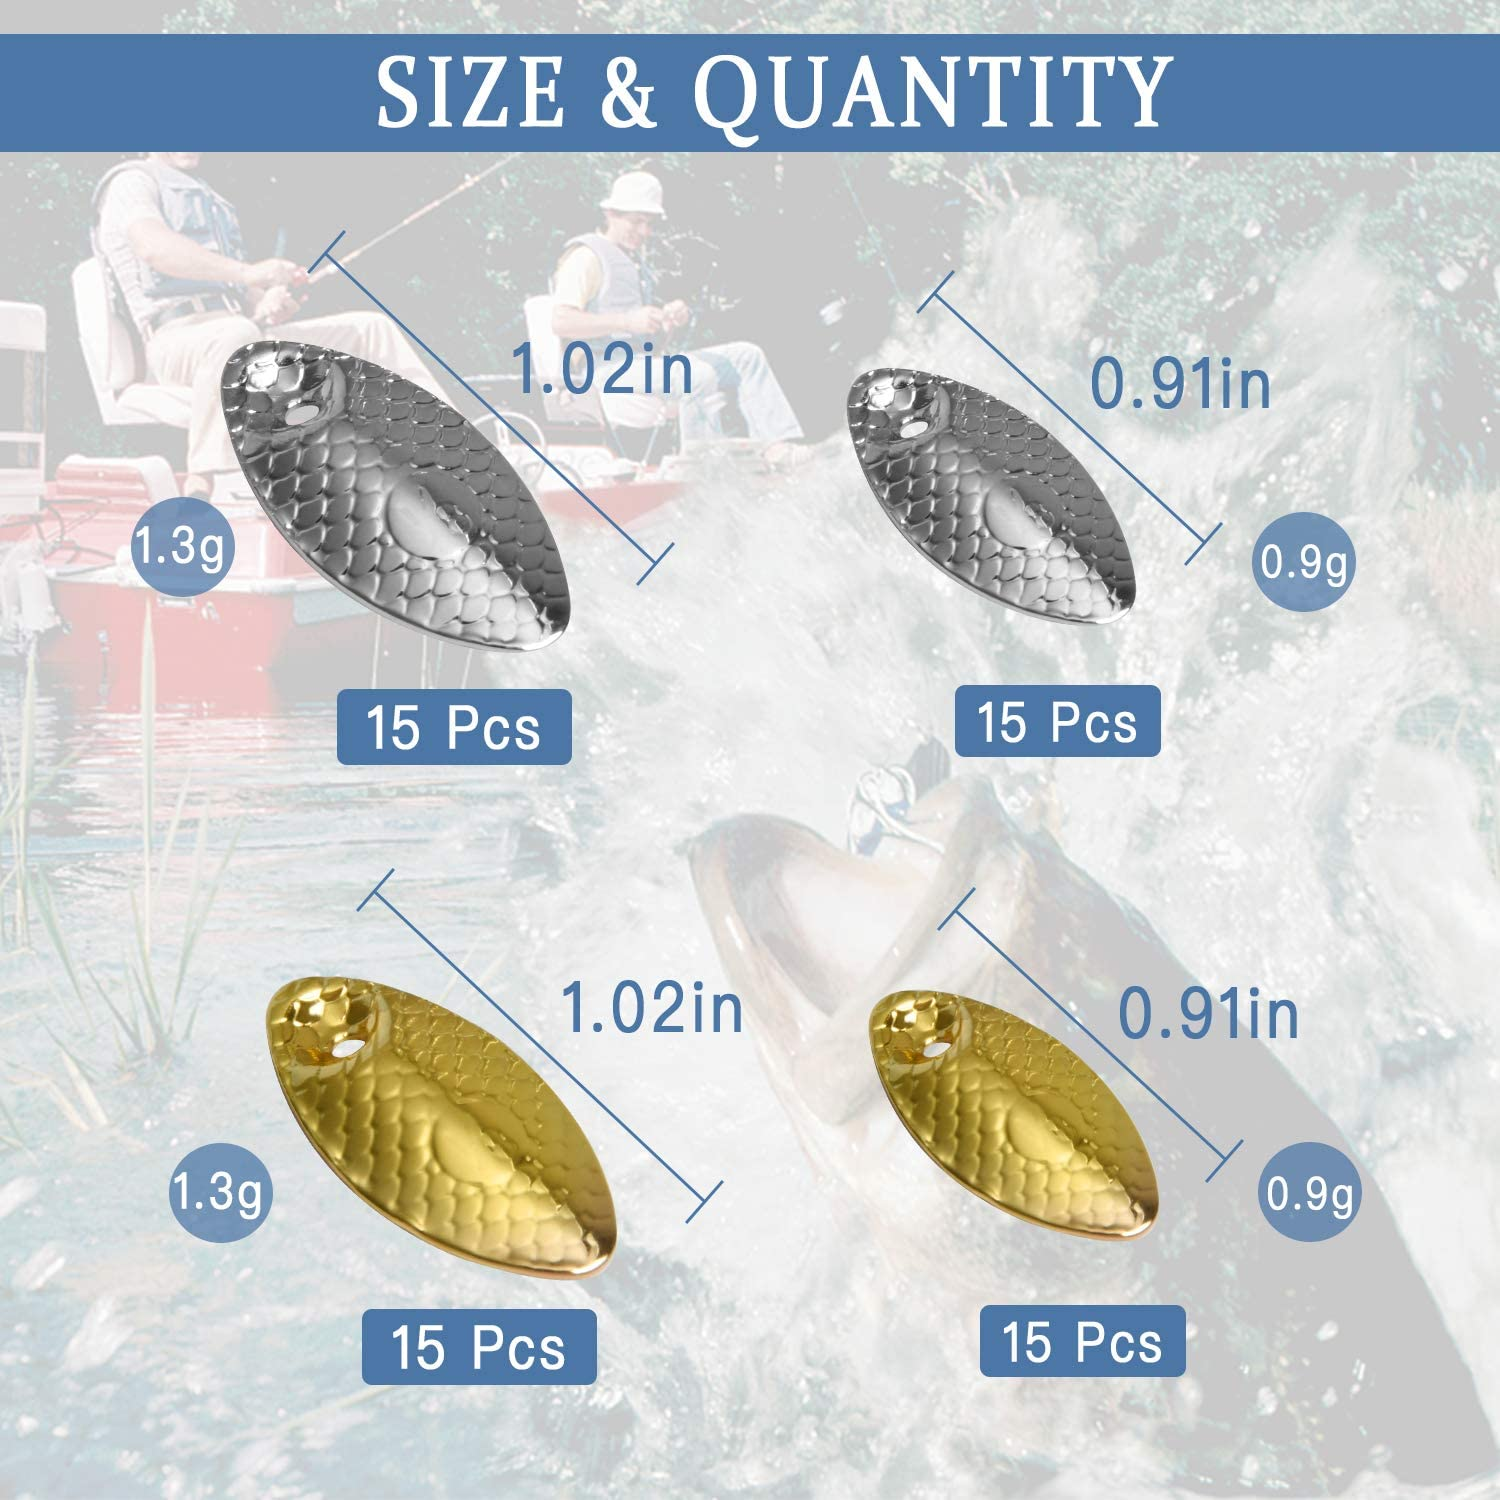 2 Size Fishing Spoons Rigs Spinner Blades Baits DIY Acceessoires for Hard Lures Worm Spinner Baits Spoons Rigs Making Akamino 60 Pcs Gold and Sliver Fishing Lures Making Kit